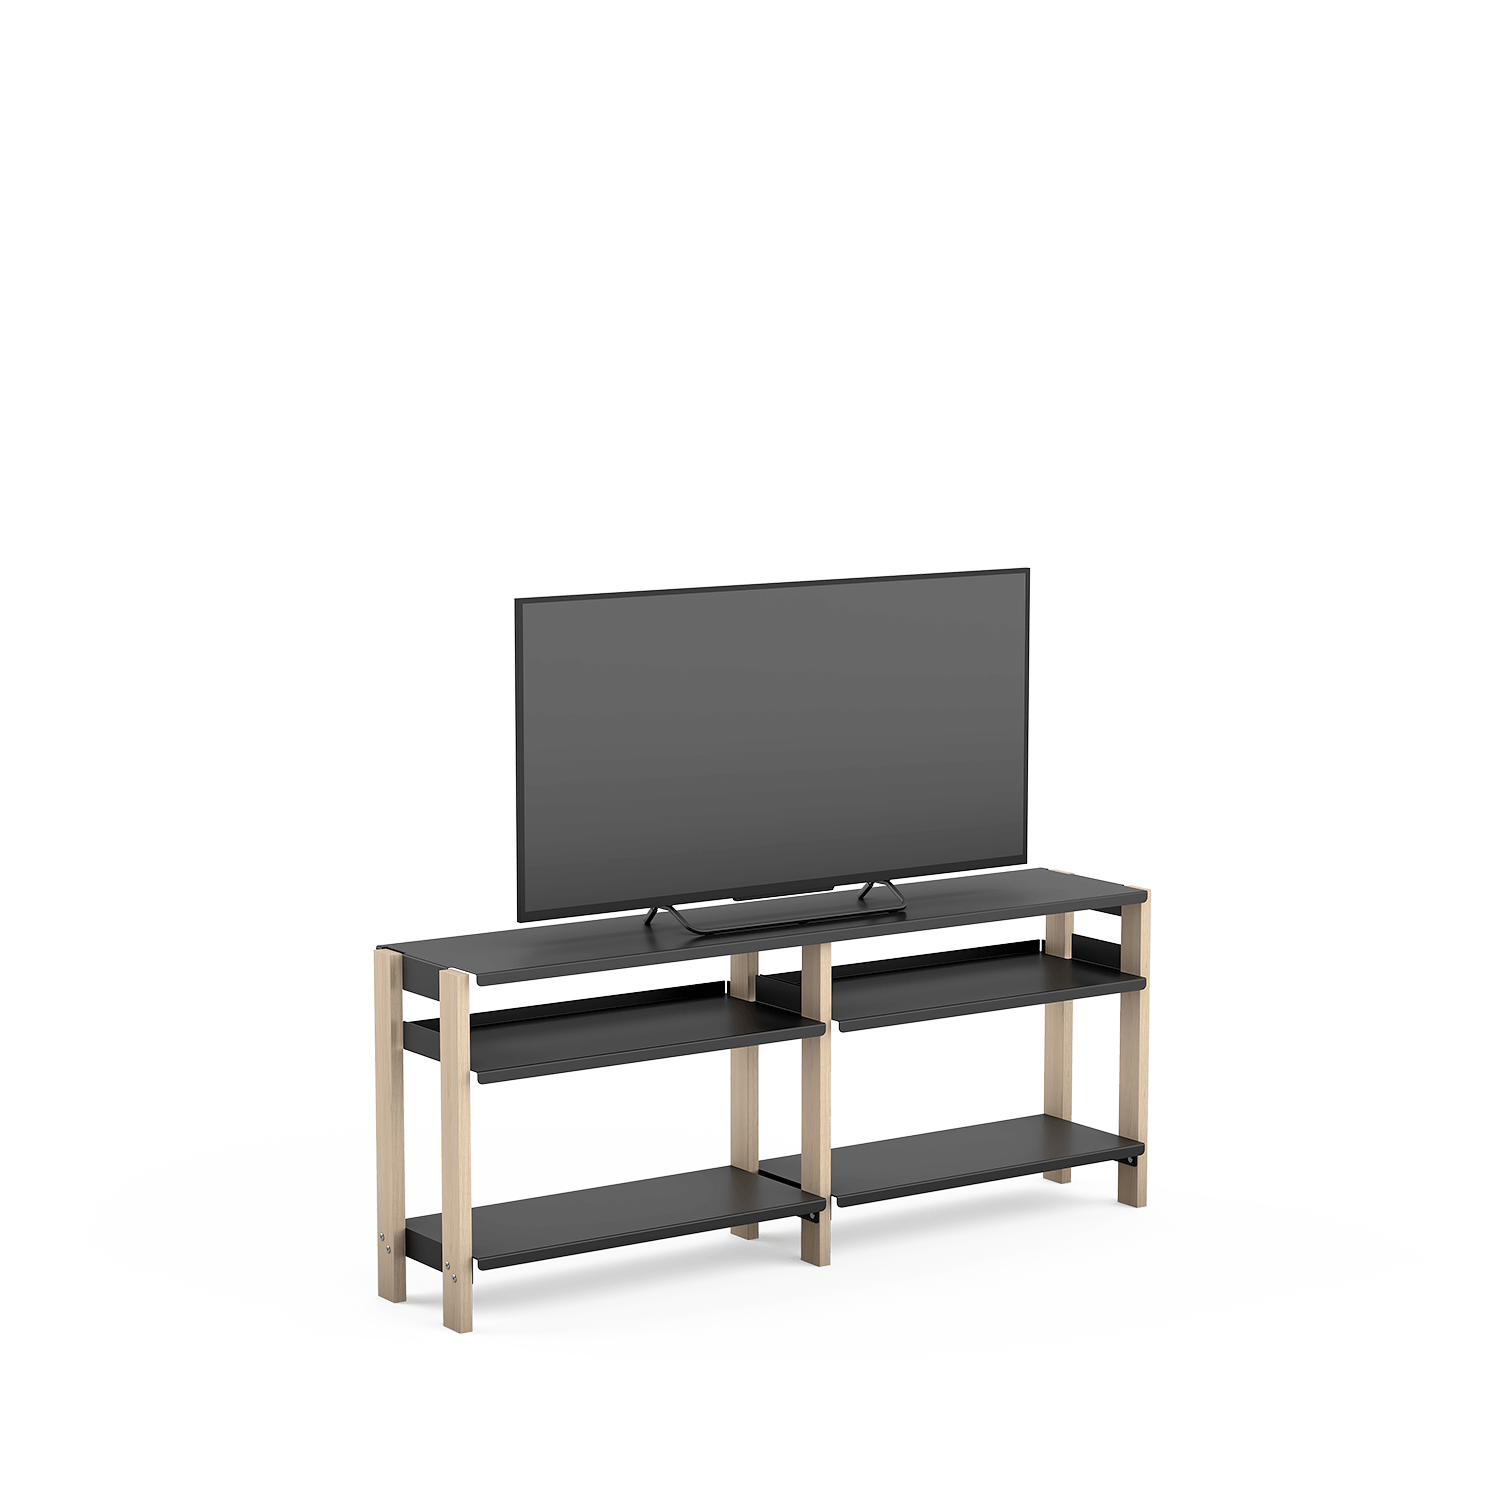 Rendering of The Media Console